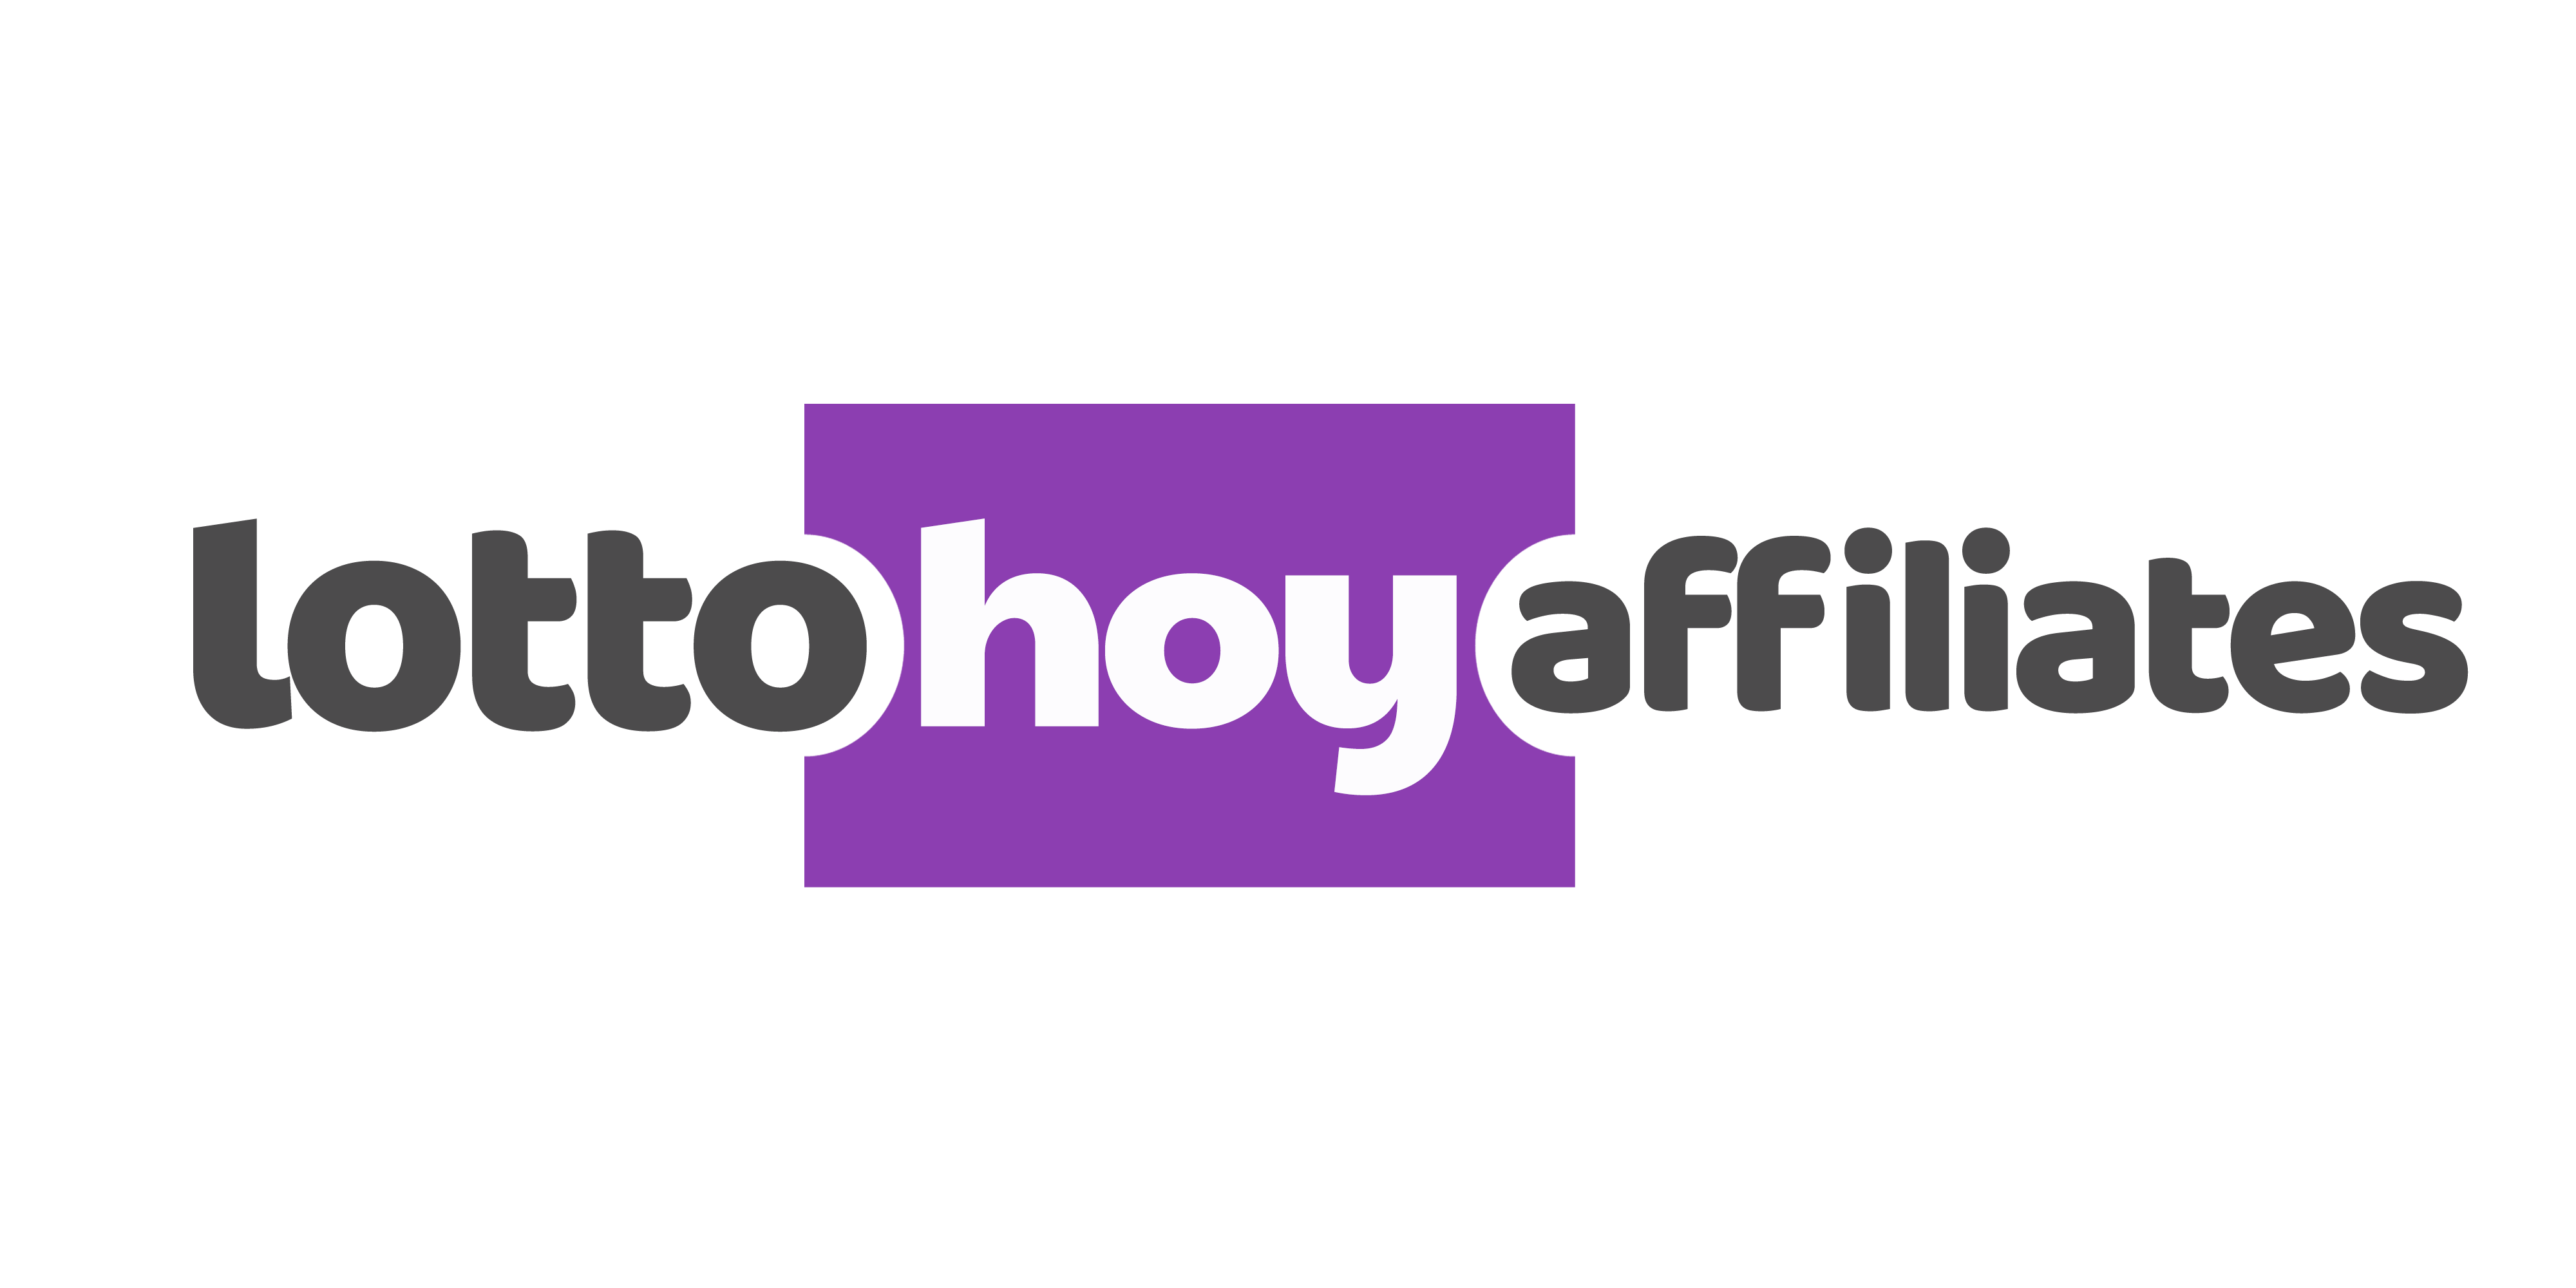 LottoHoy Affiliates